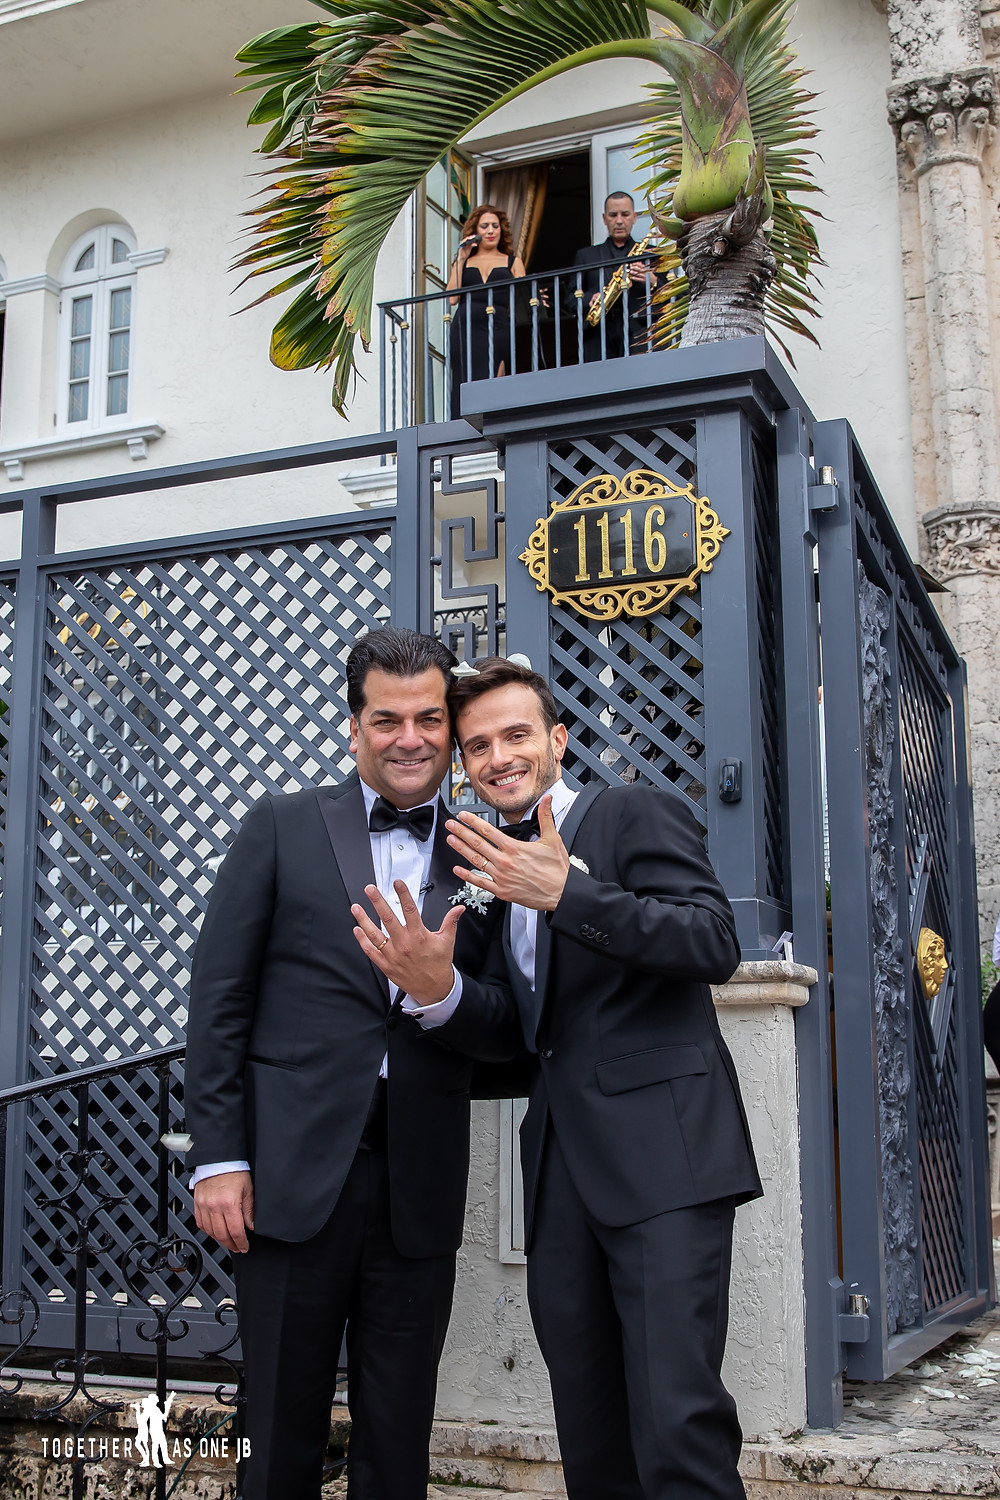 Grooms show wedding bands in front of Villa Casa Casuarina while singer and saxophone player play music